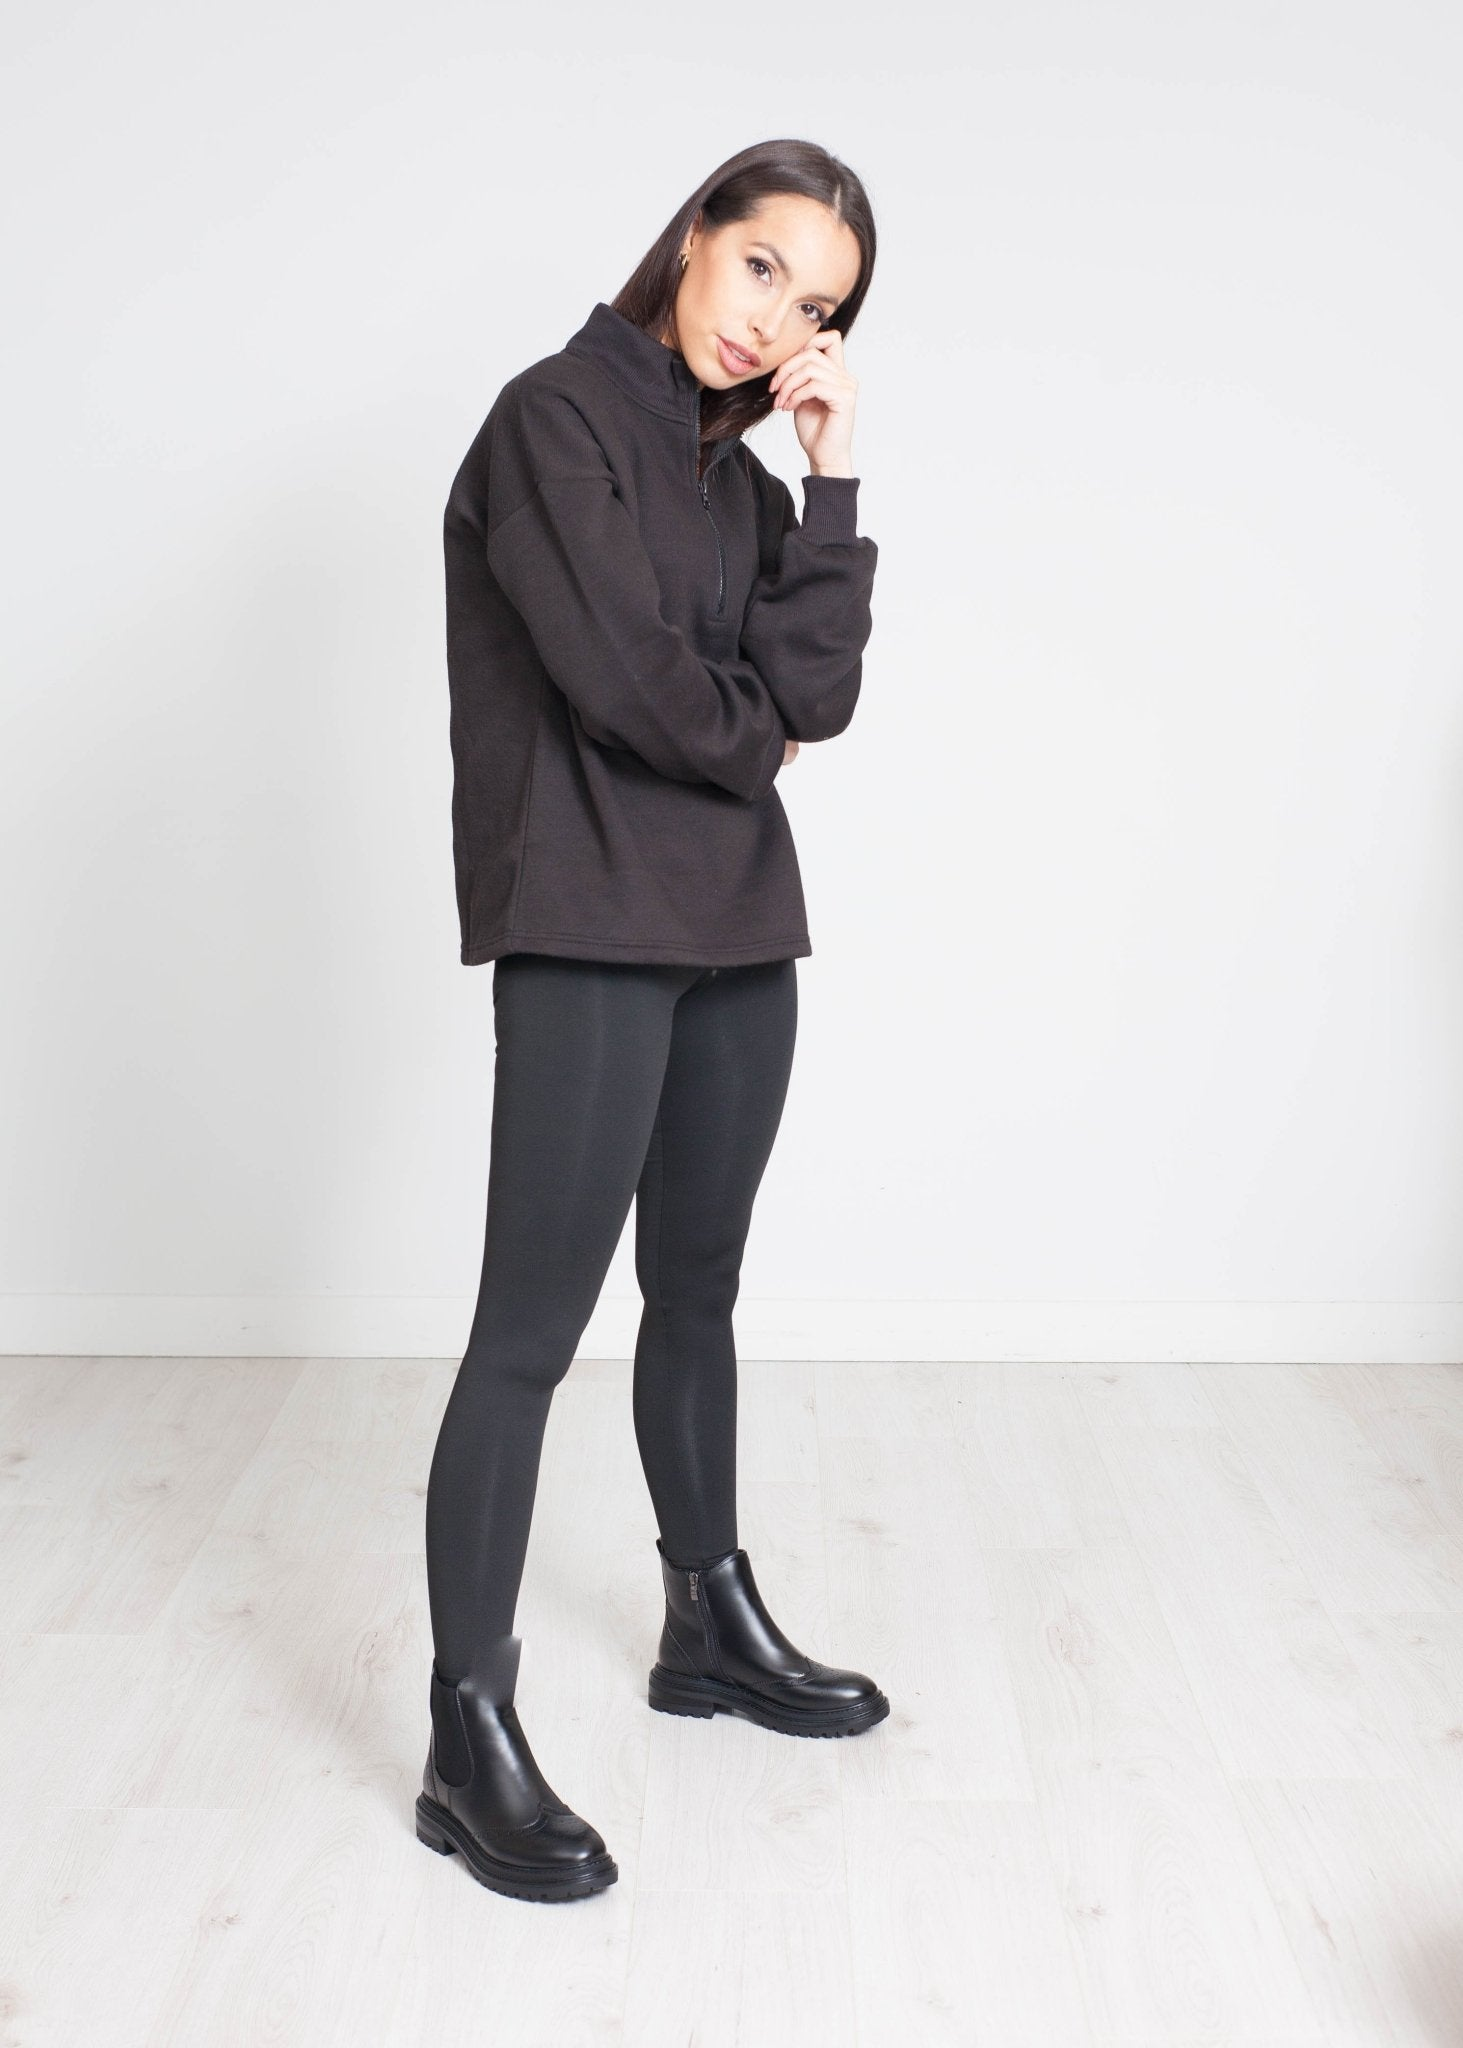 Stella Half Zip Sweatshirt In Black - The Walk in Wardrobe